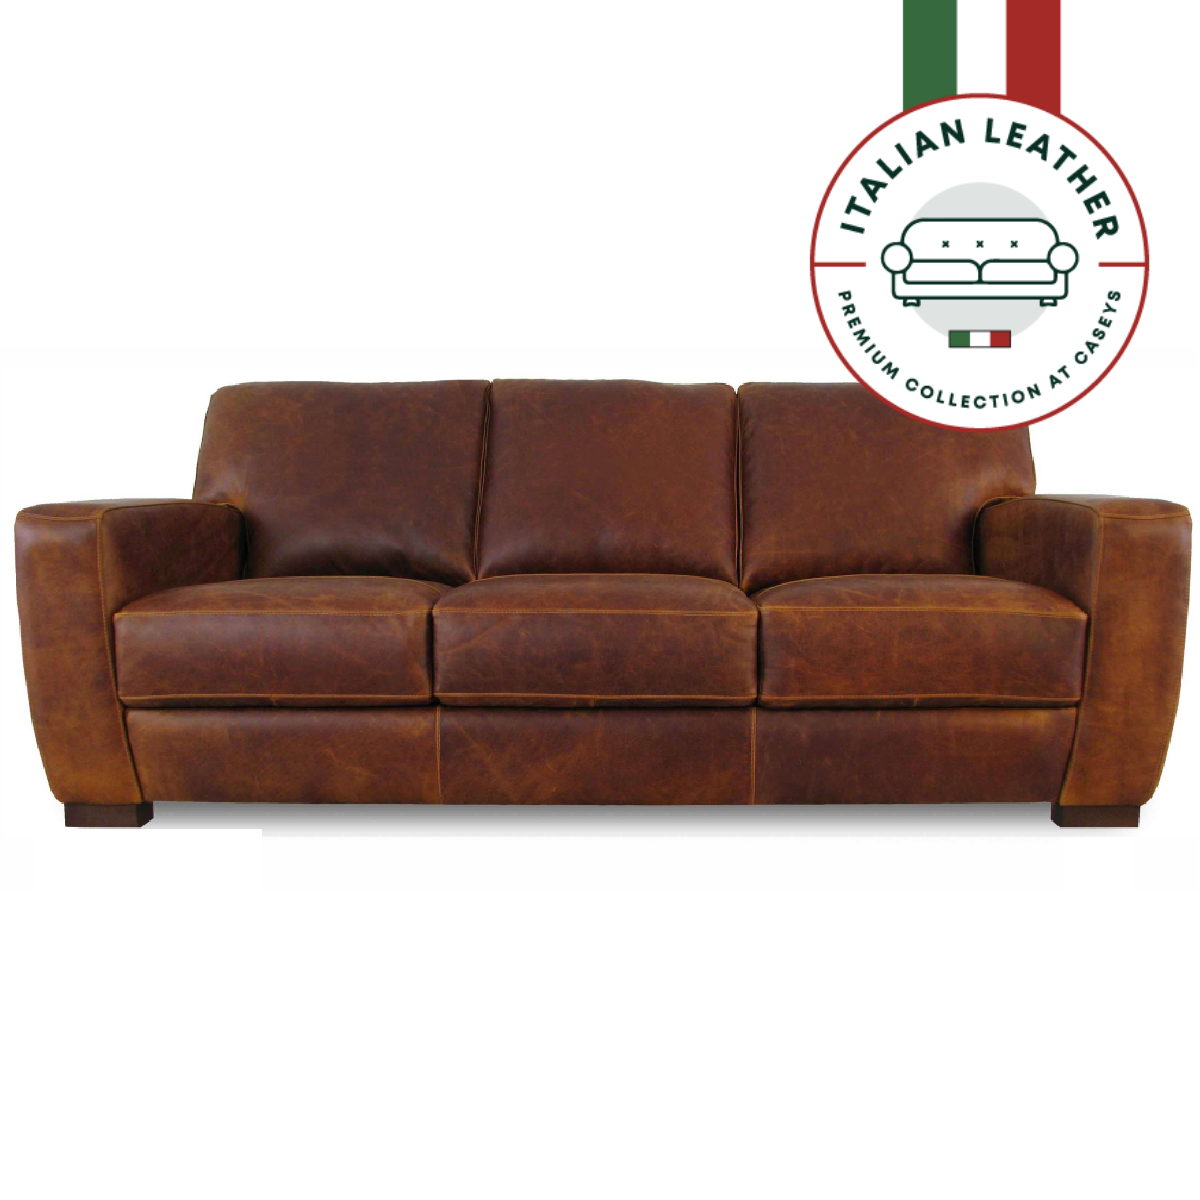 Marco Large Sofa